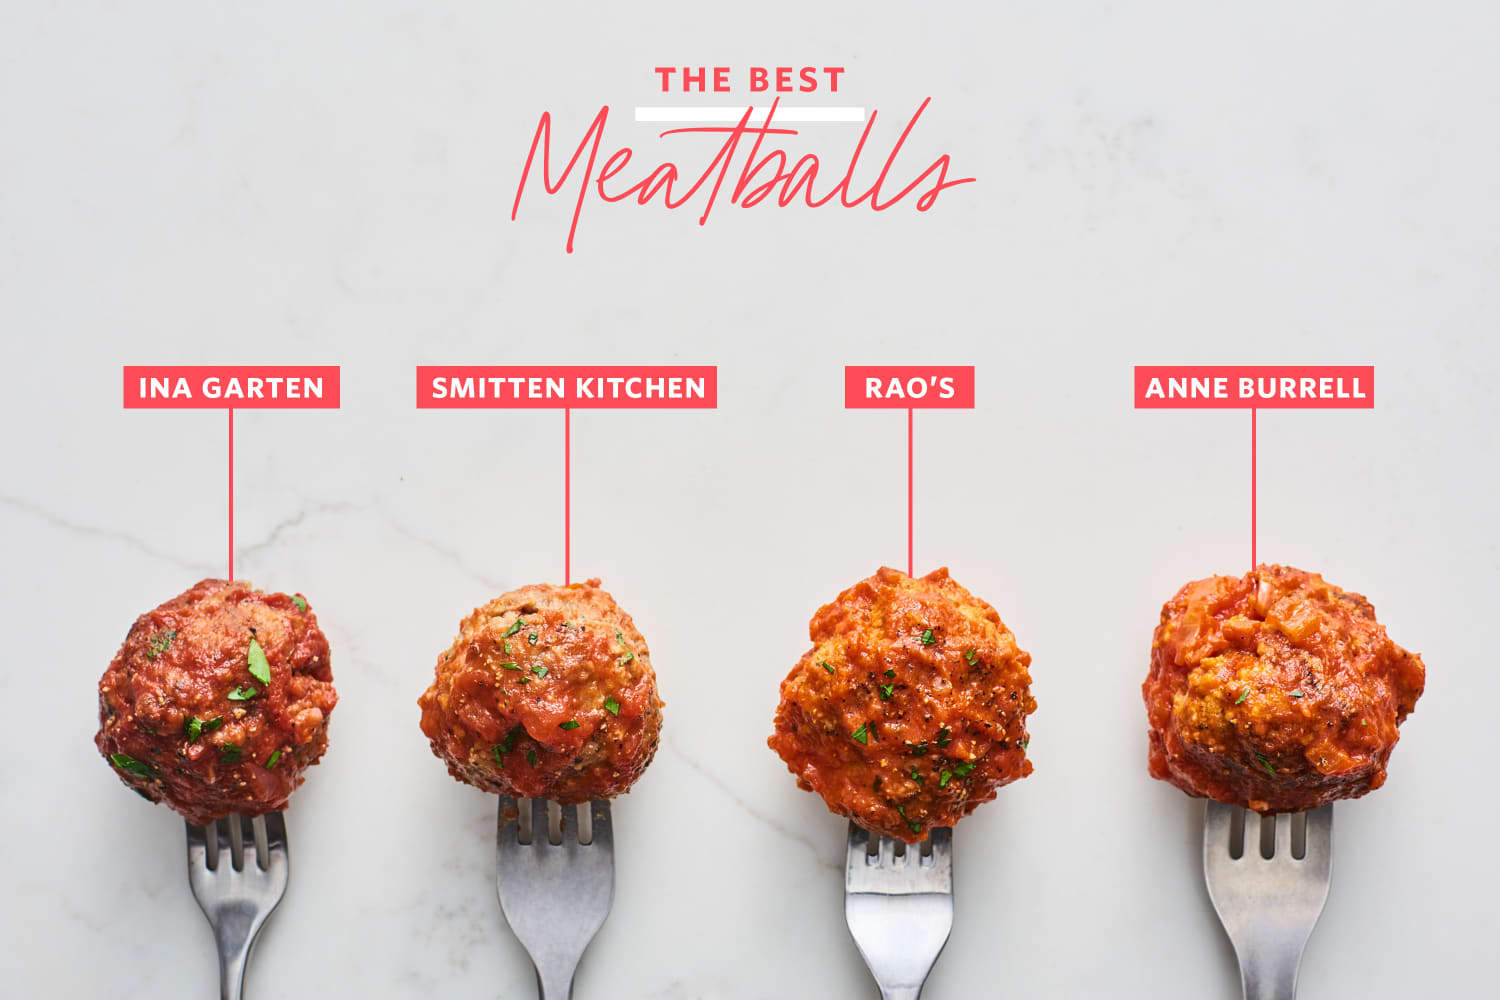 We Tested 4 Famous Meatball Recipes and Found a Clear Winner